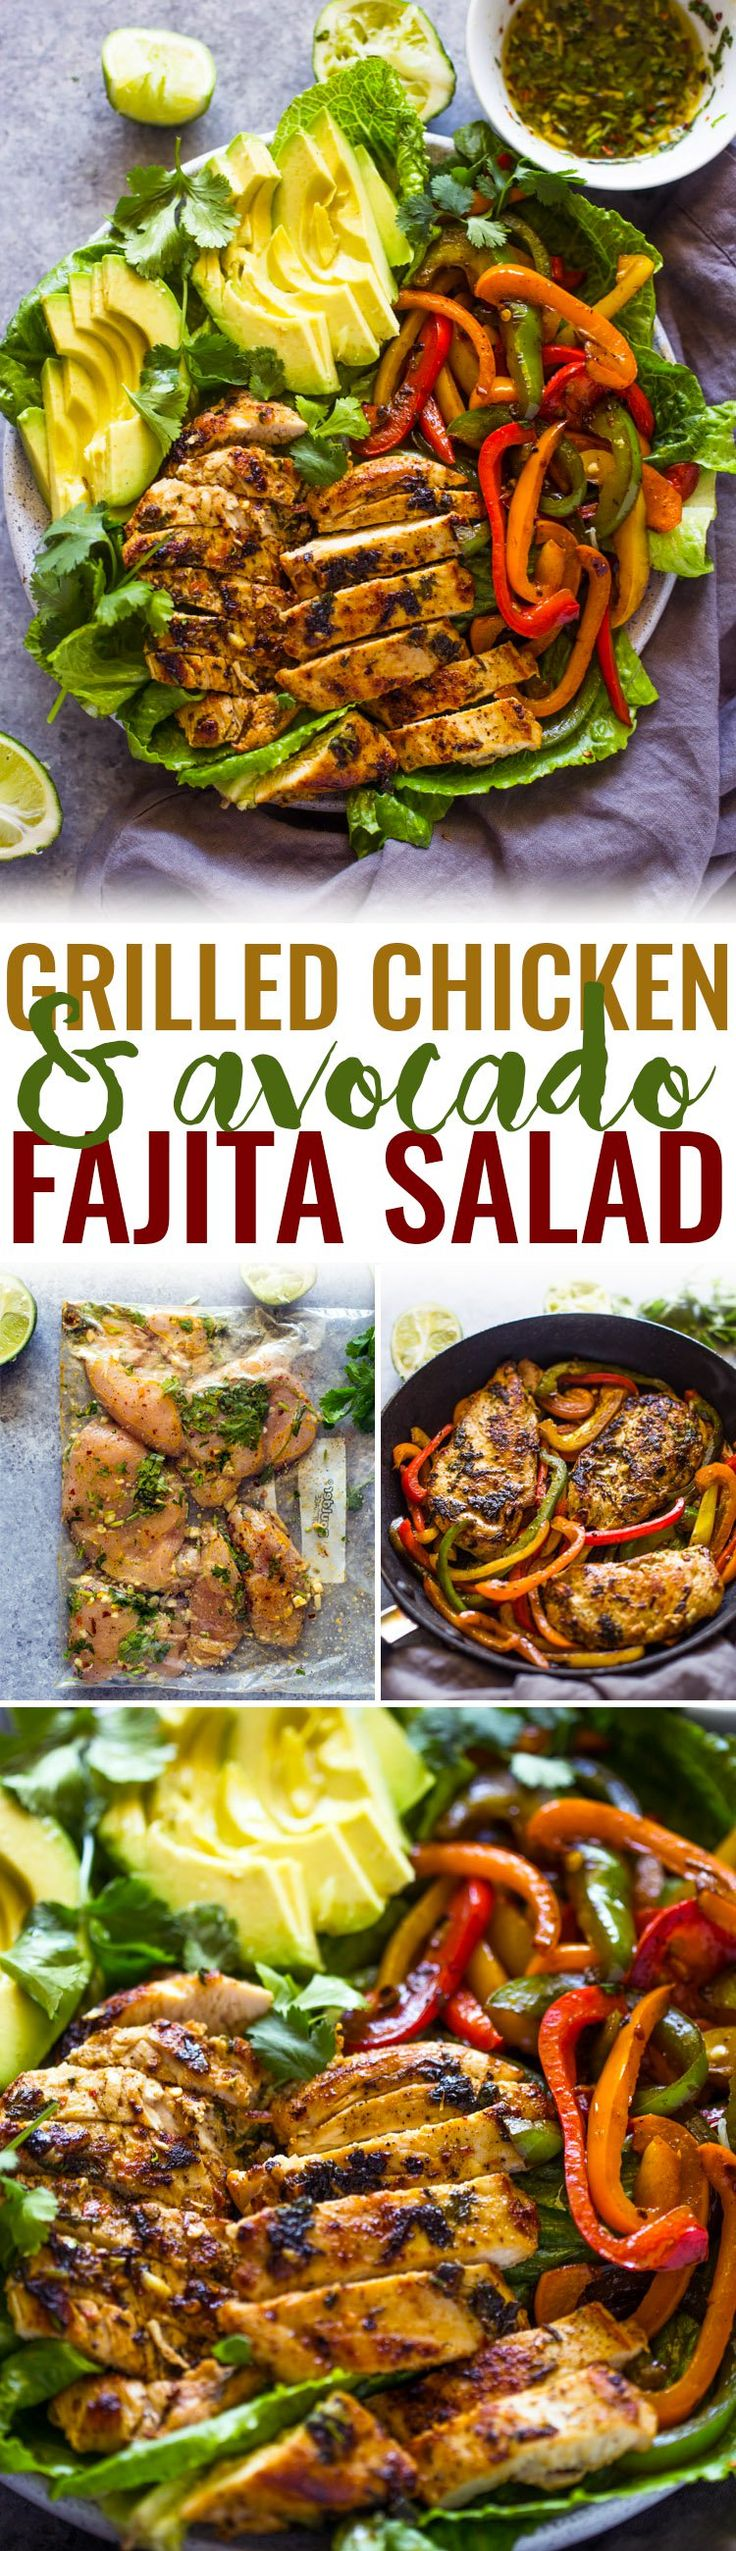 Skinny Grilled Chicken Fajita & Avocado Salad